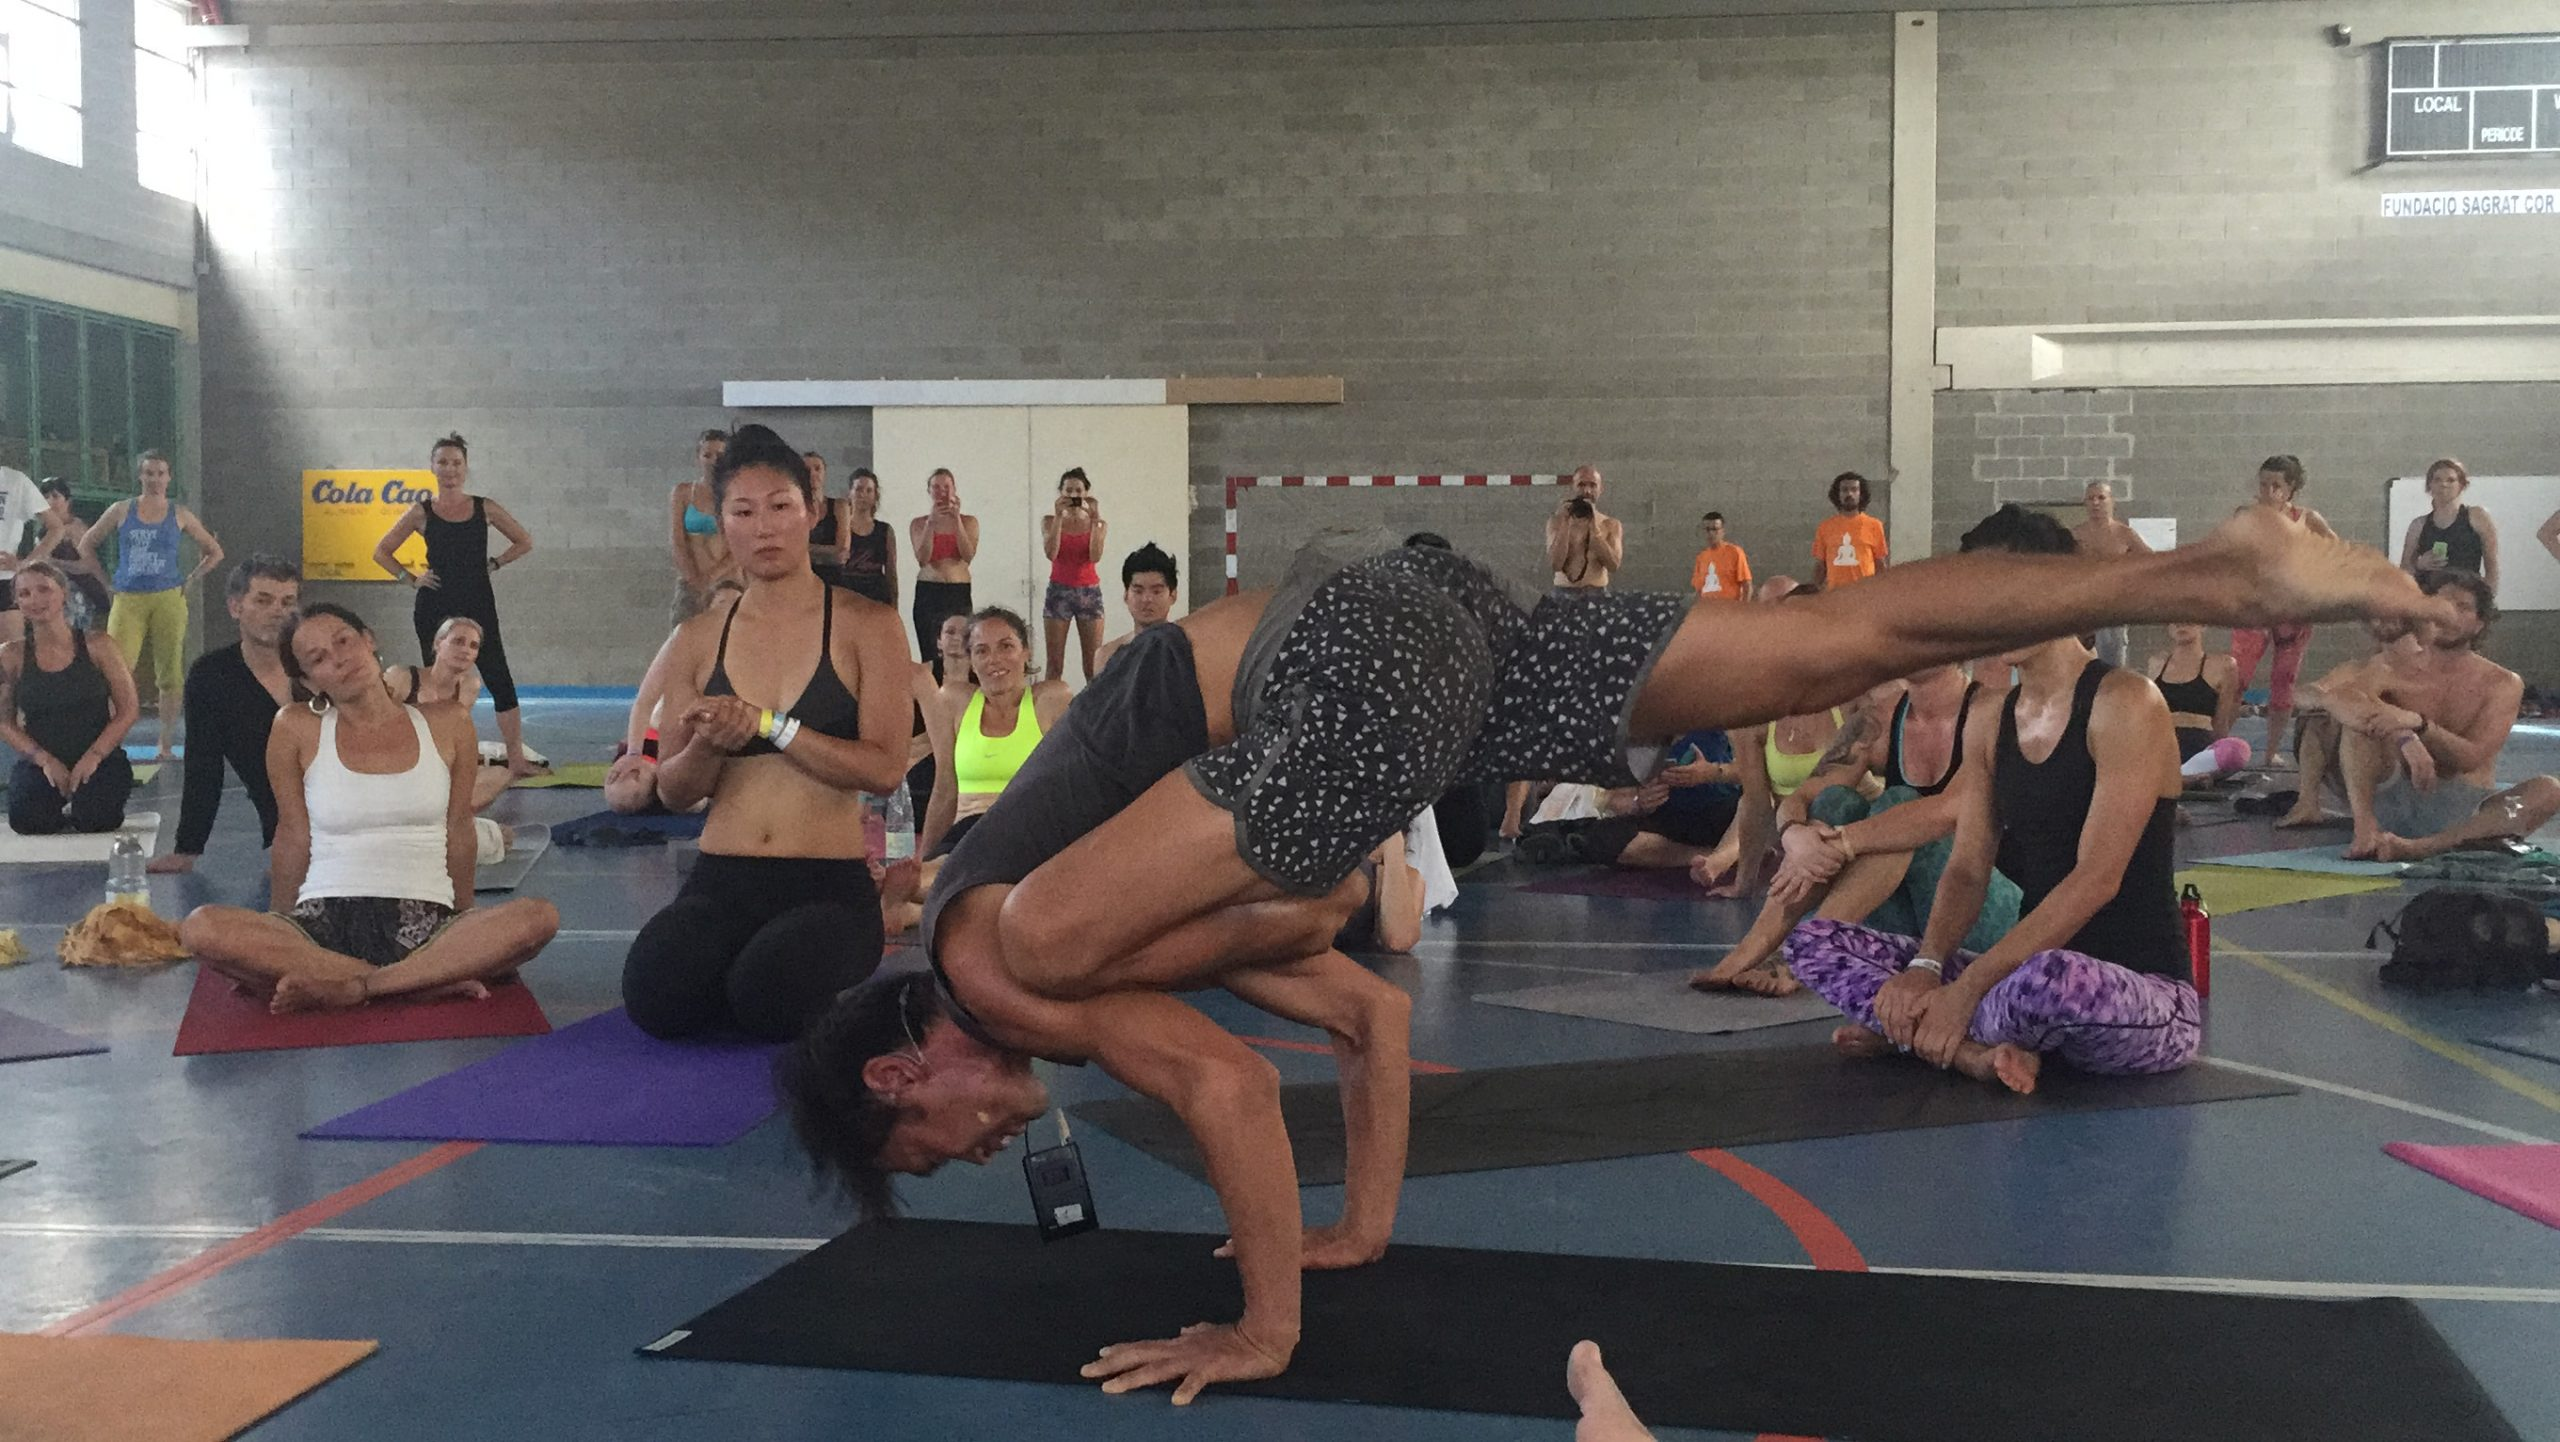 Barcelona Yoga Conference, Simon Park